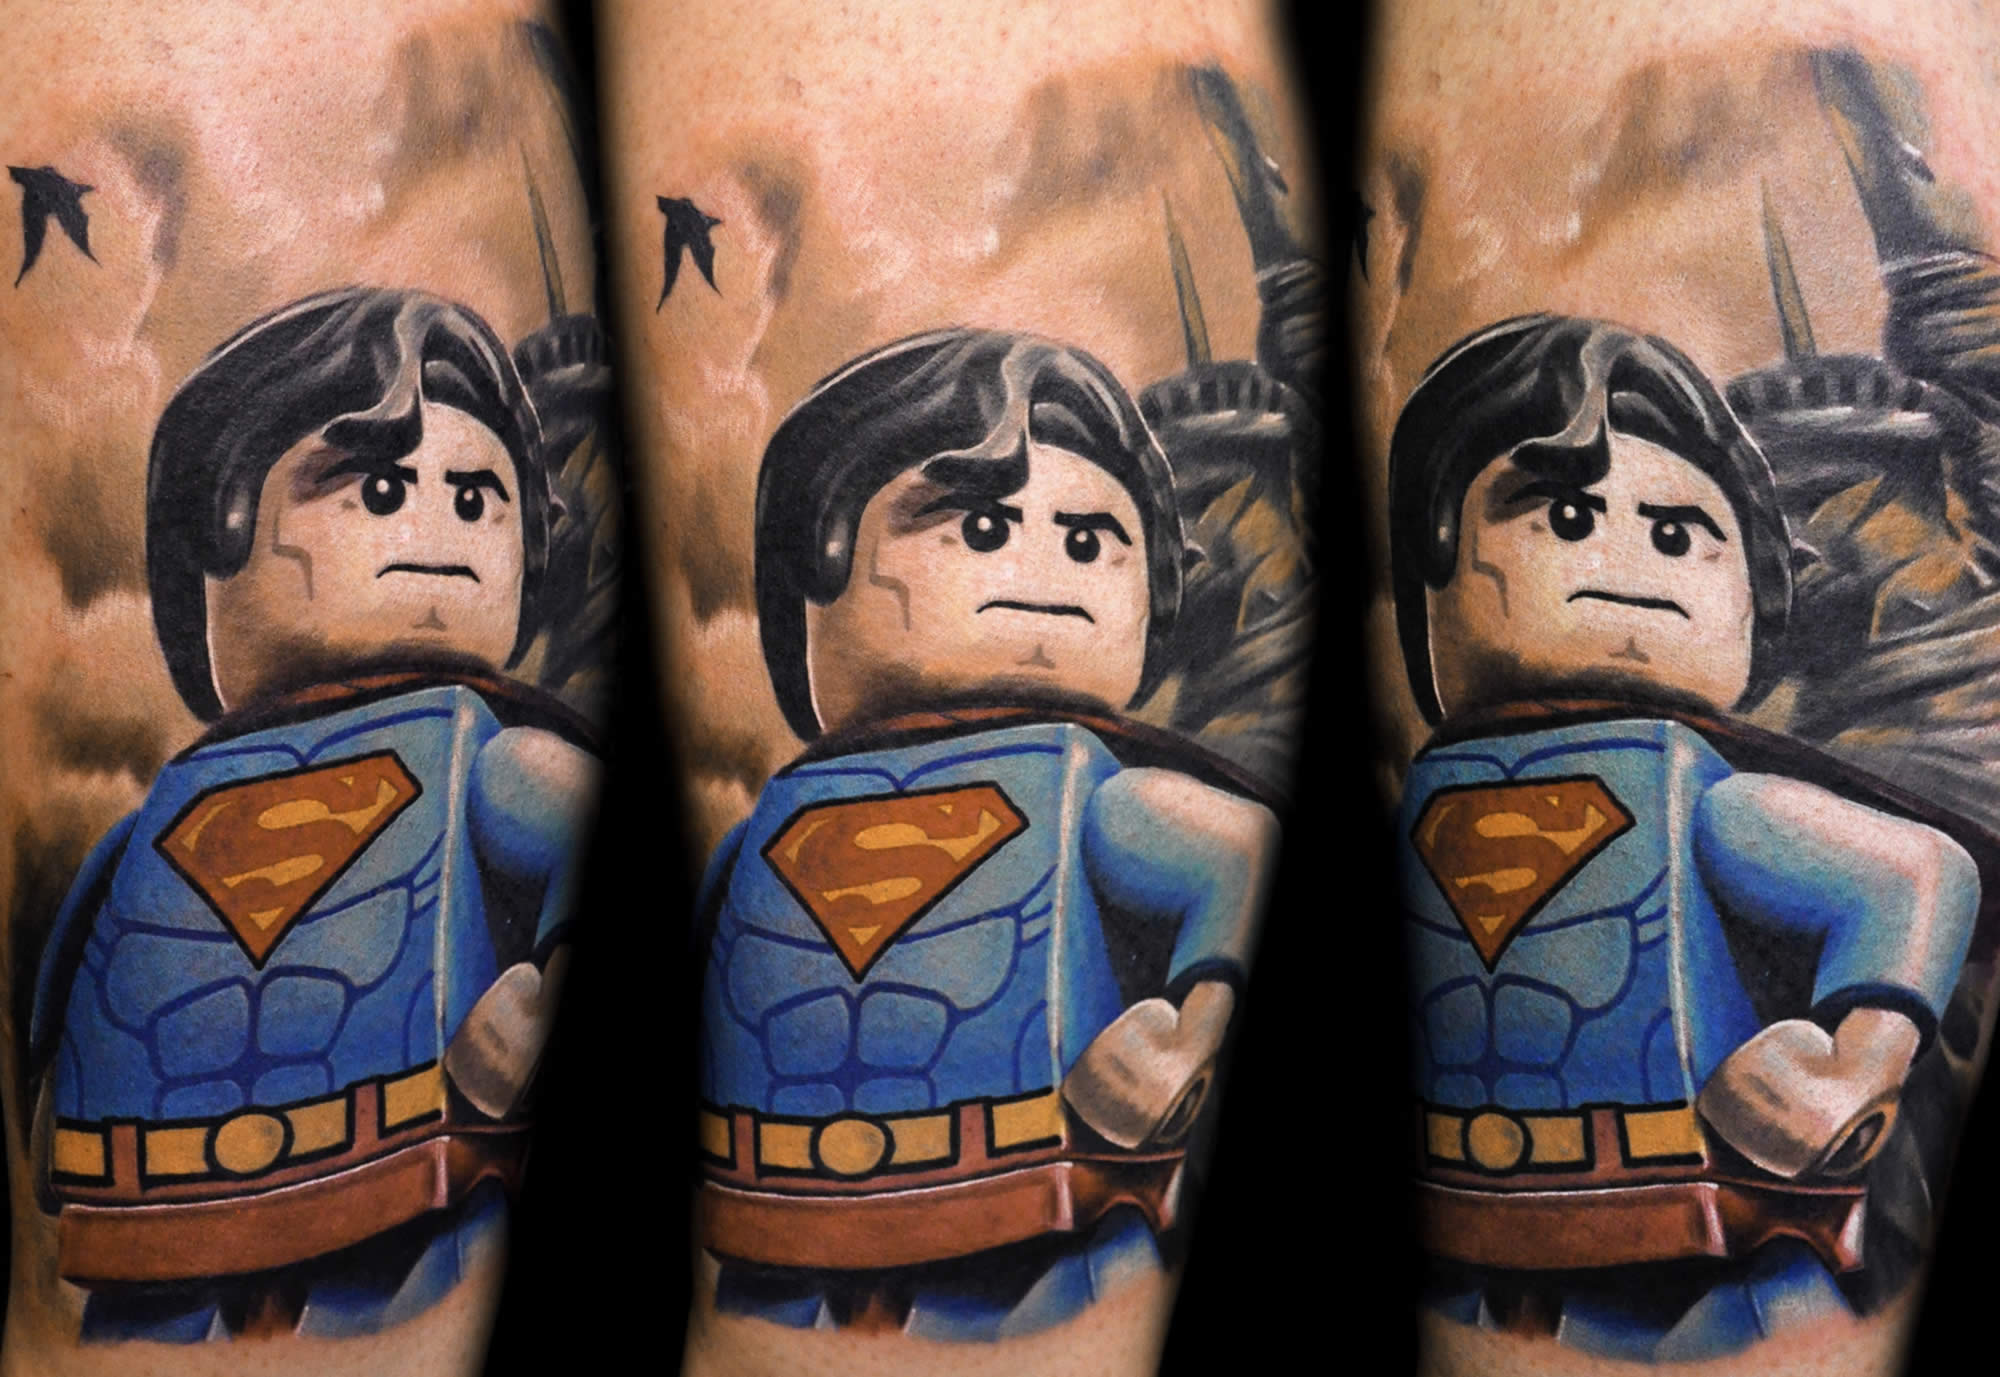 superman lego character tattoo